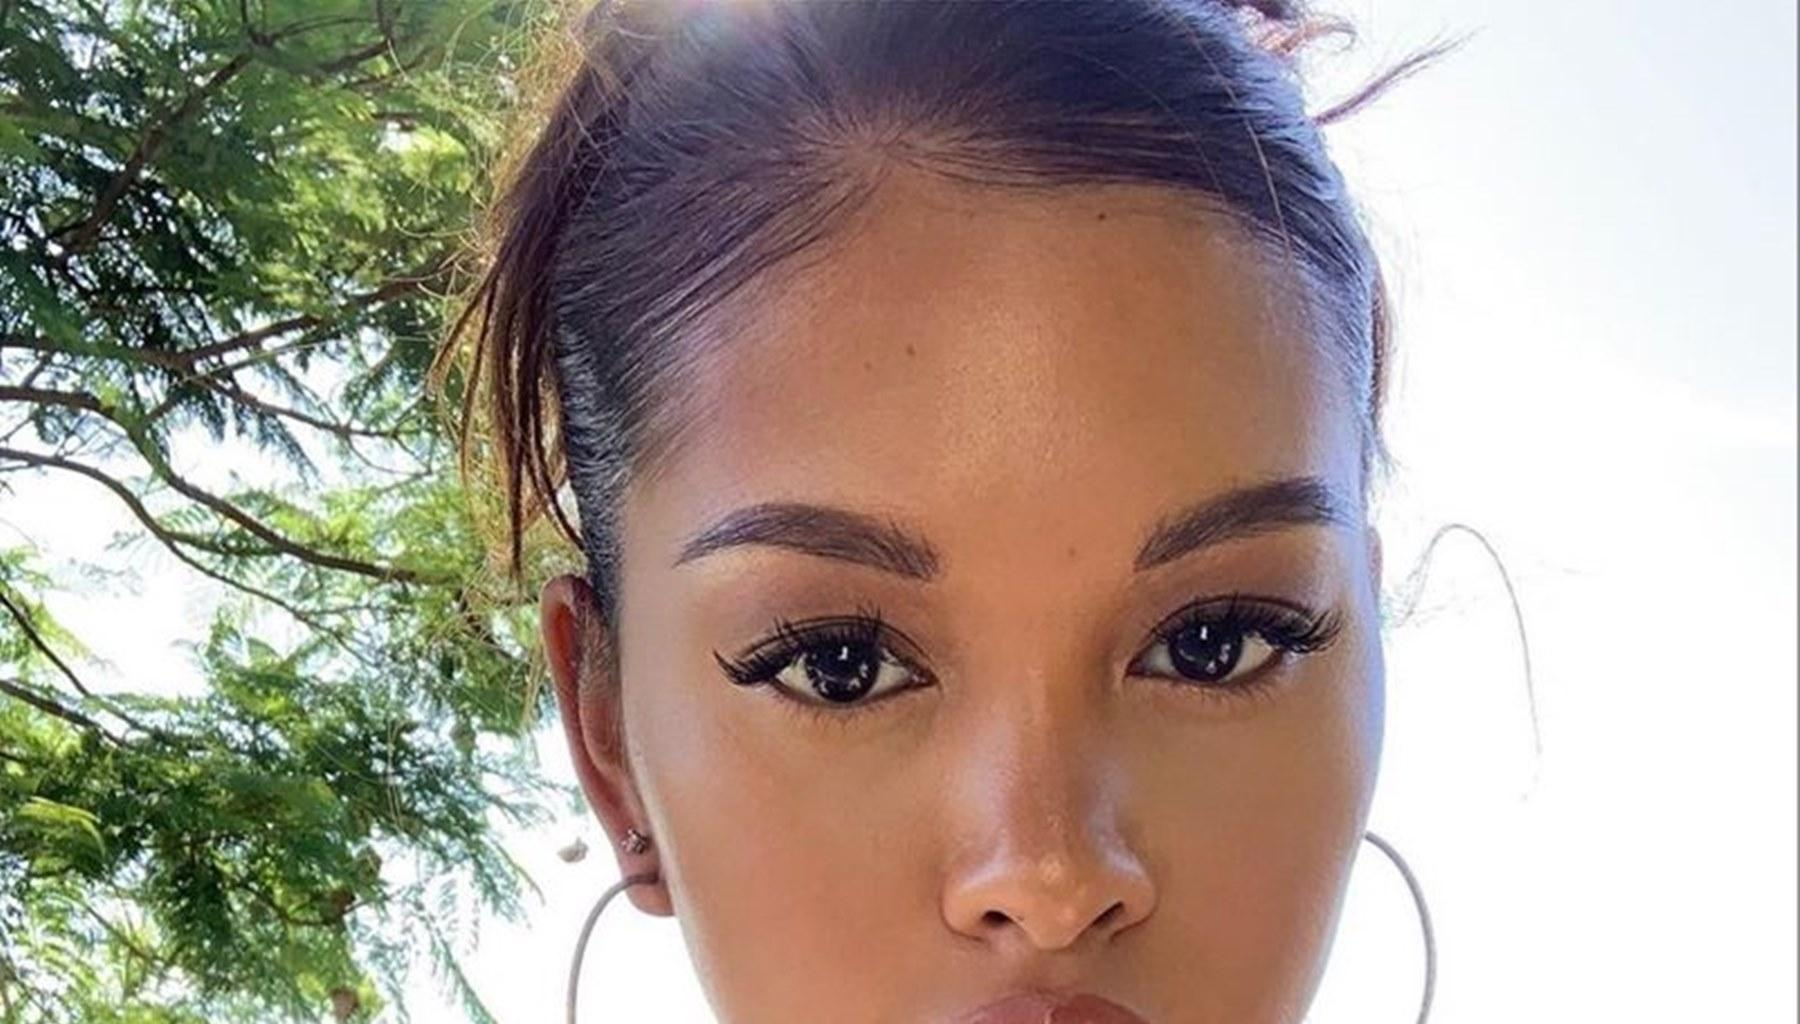 Chris Brown's Baby Mama, Ammika Harris, Says She Is Married In Sweet Video Where She Shows Off Her Husband Leaving Some Fans Confused